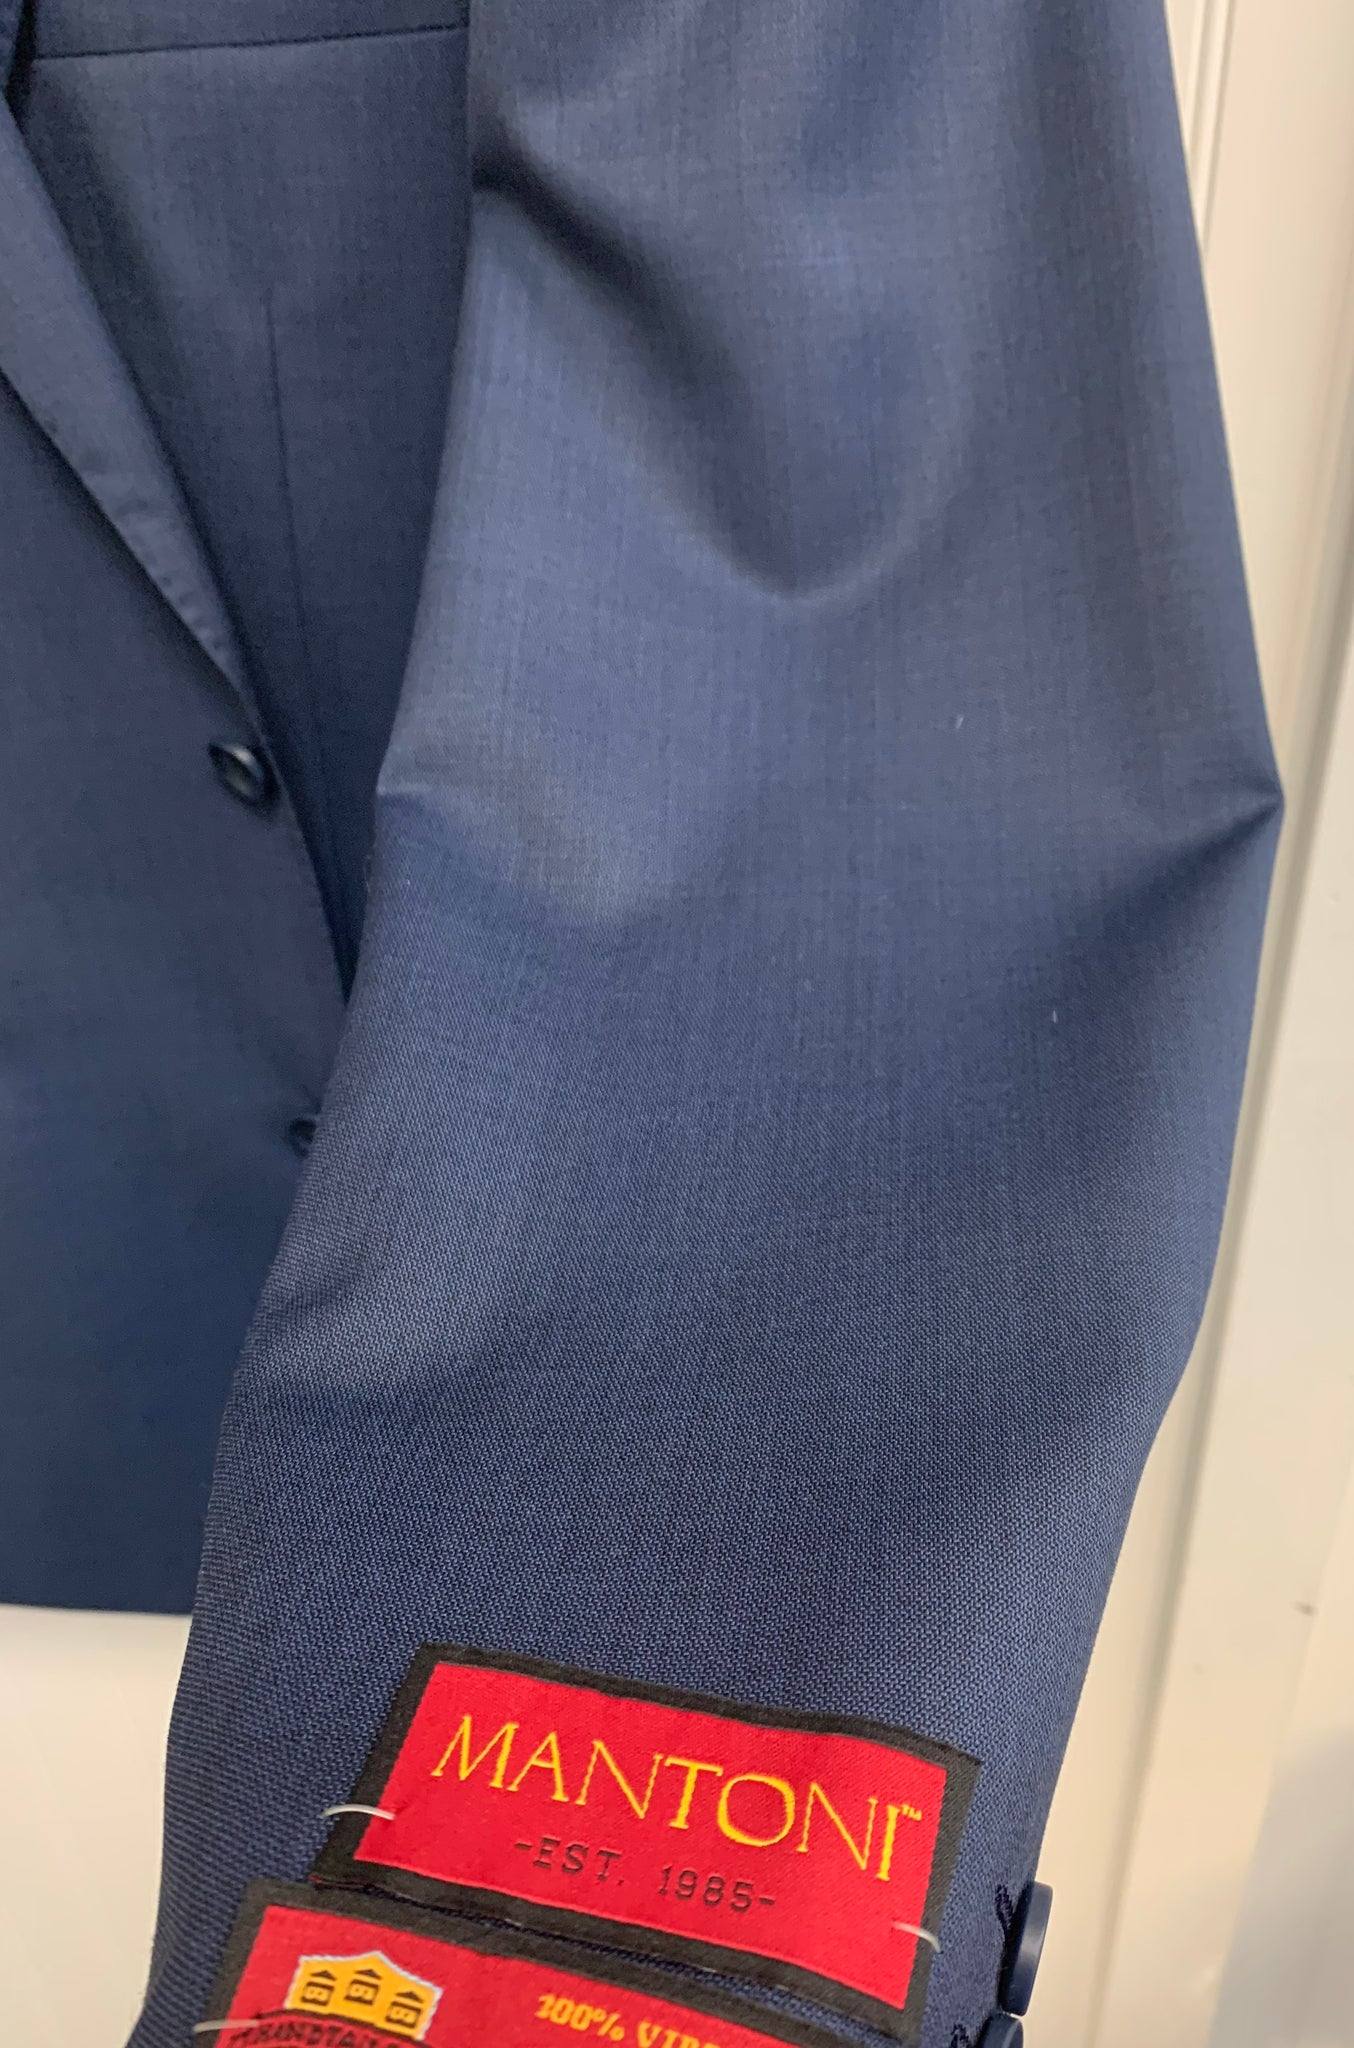 Mantoni Super 140 Wool Suit- 87158-1 (Textured Blue)